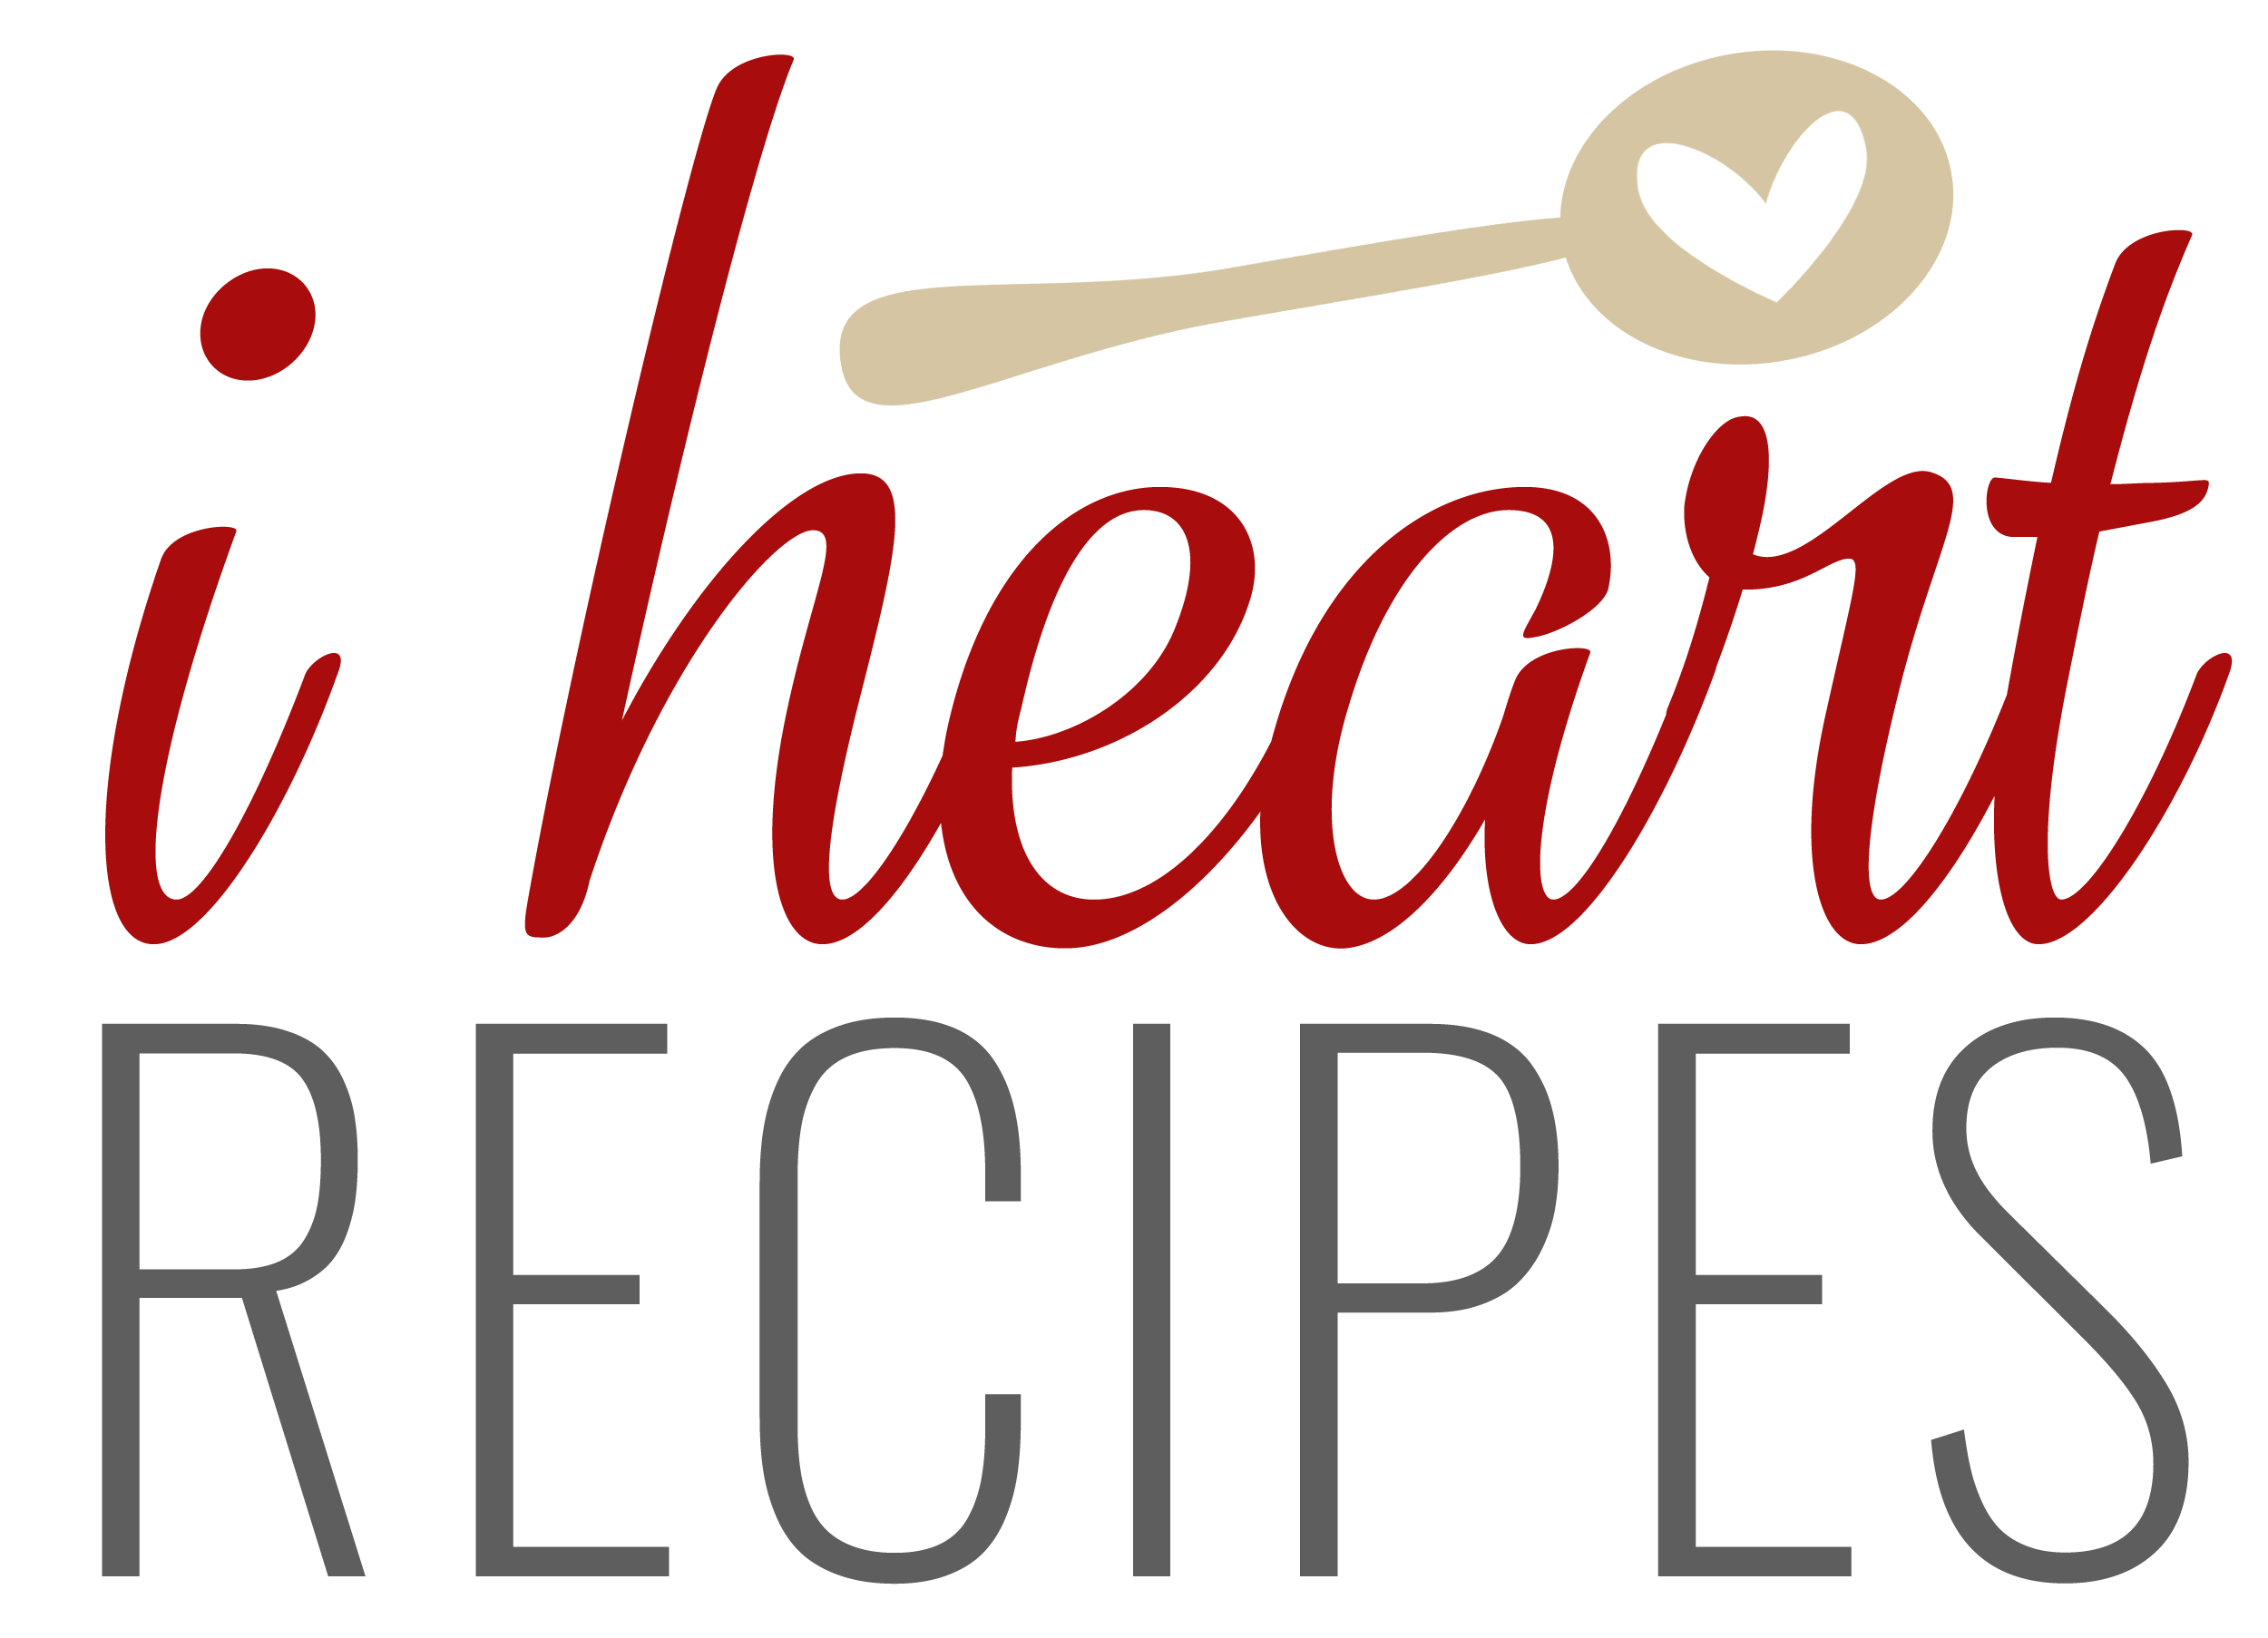 I heart recipes sisters. Dinner clipart soul food